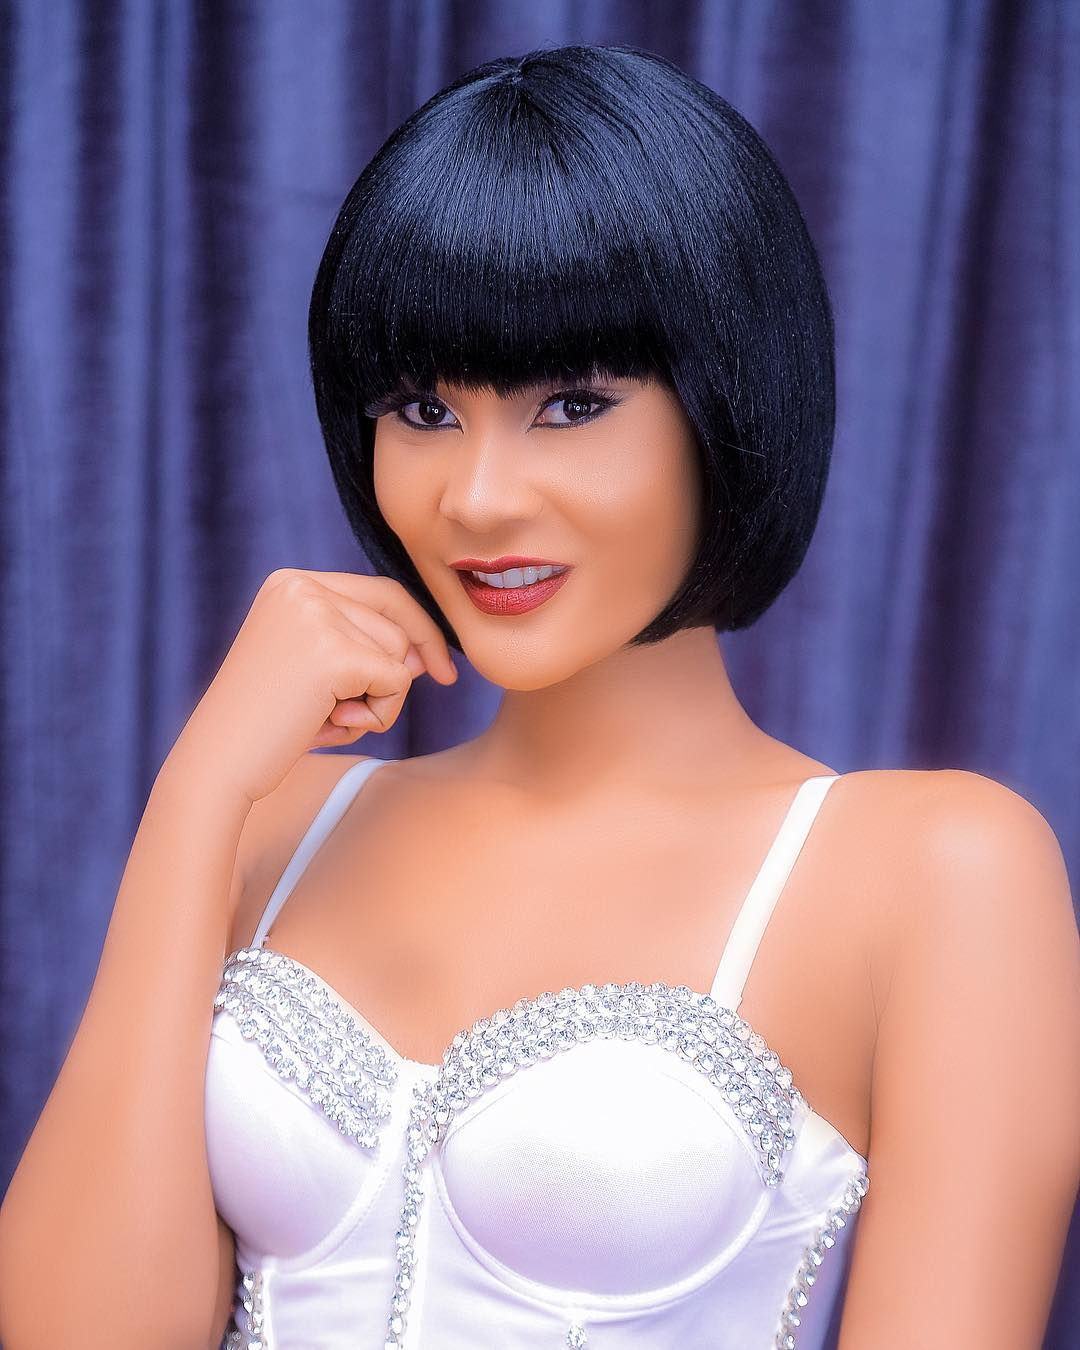 41384823 302562740332915 767820413523334223 n - Beauty pains! Tanzanian celebrities who will be affected by the new wig tax